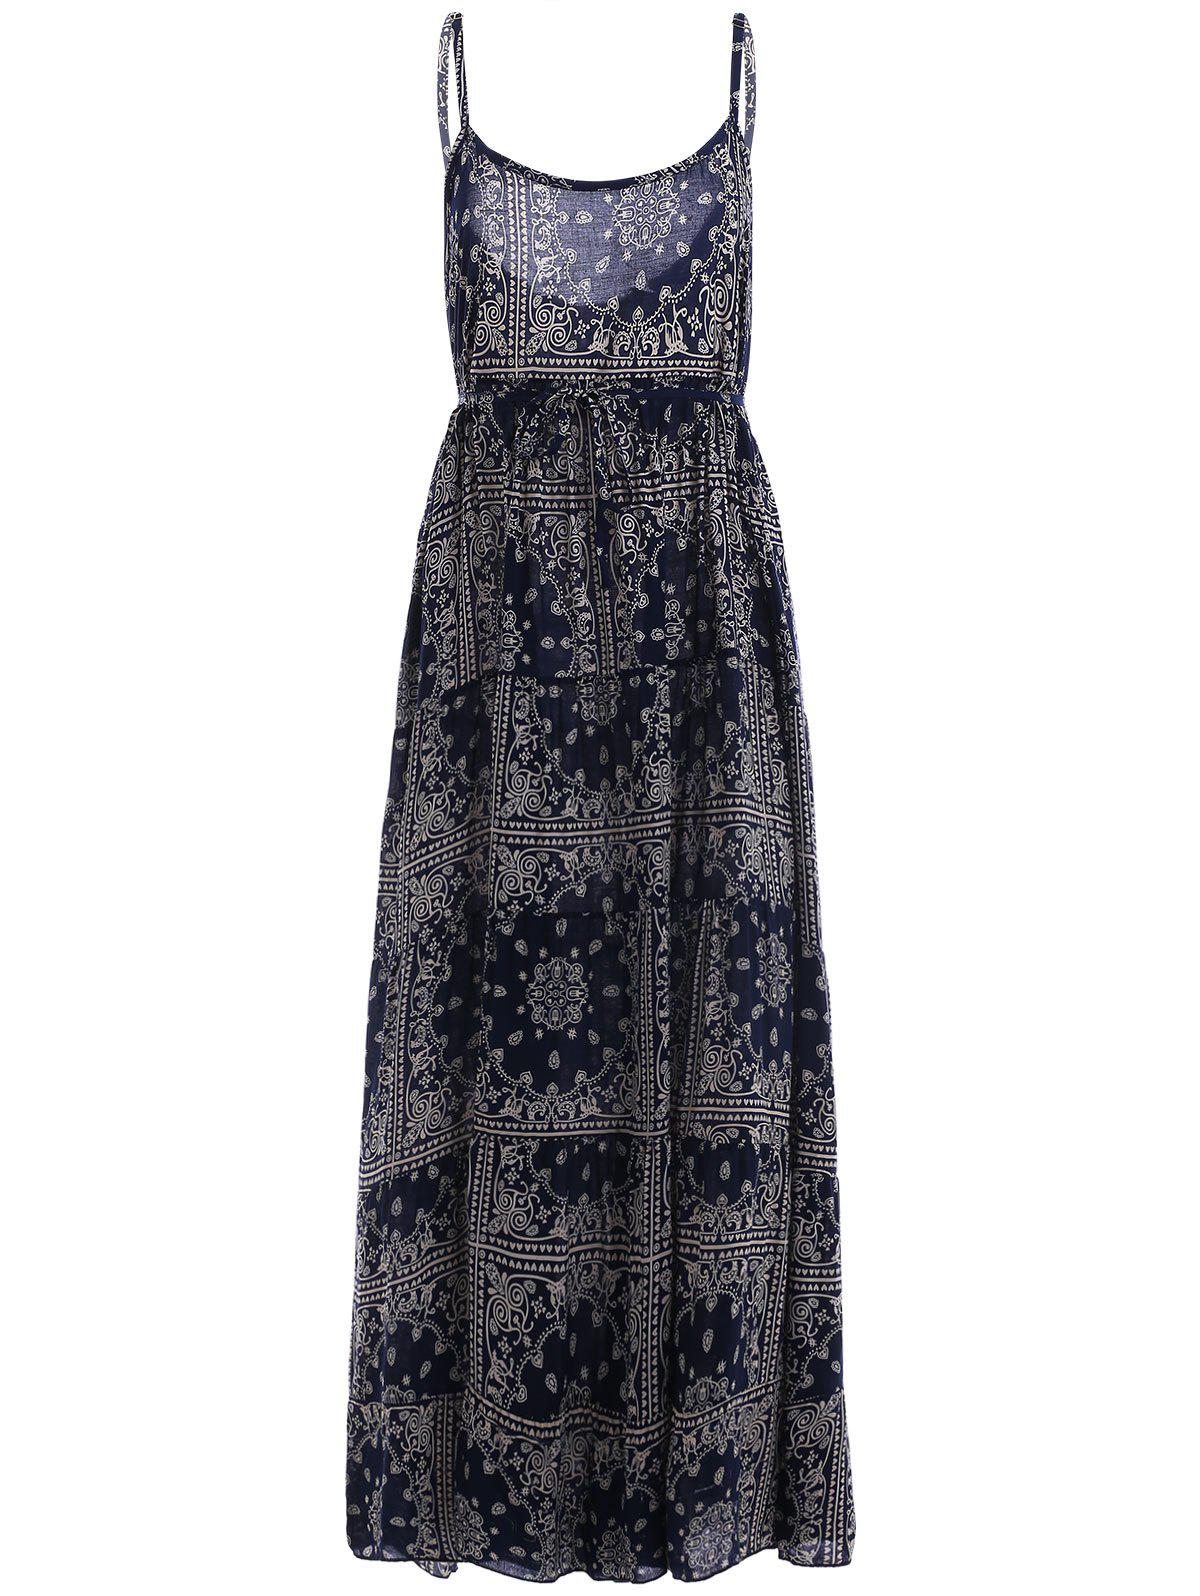 Ethnic Style Women's Spaghetti Strap Tribal Print Tie Maxi Dress - PURPLISH BLUE S